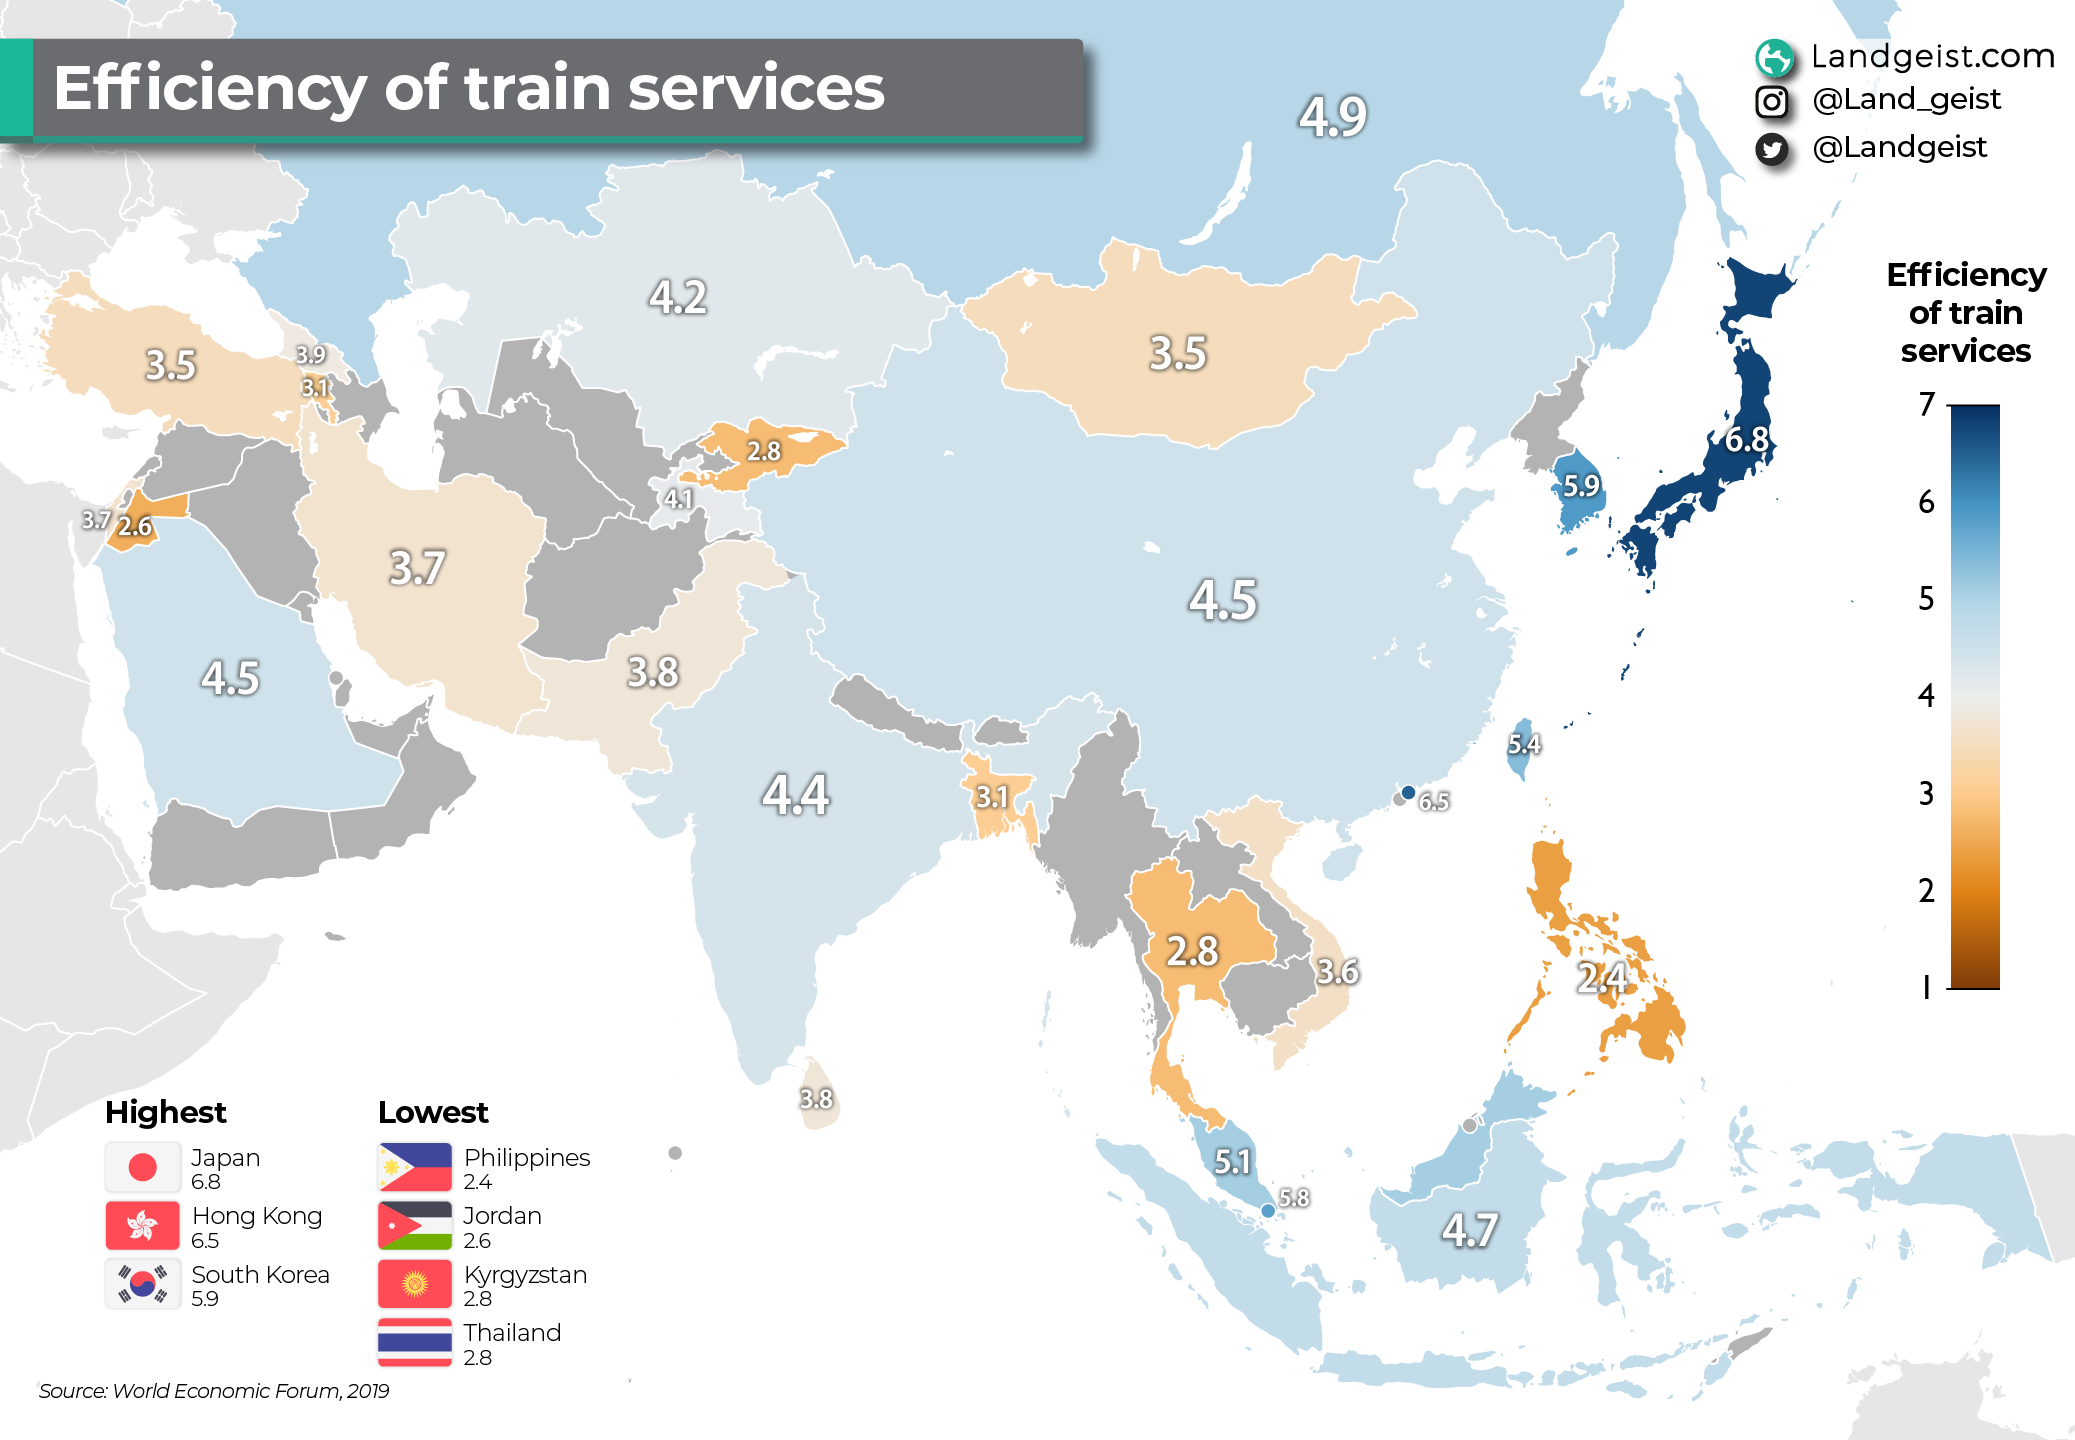 Map of the efficiency of train services in Asia.